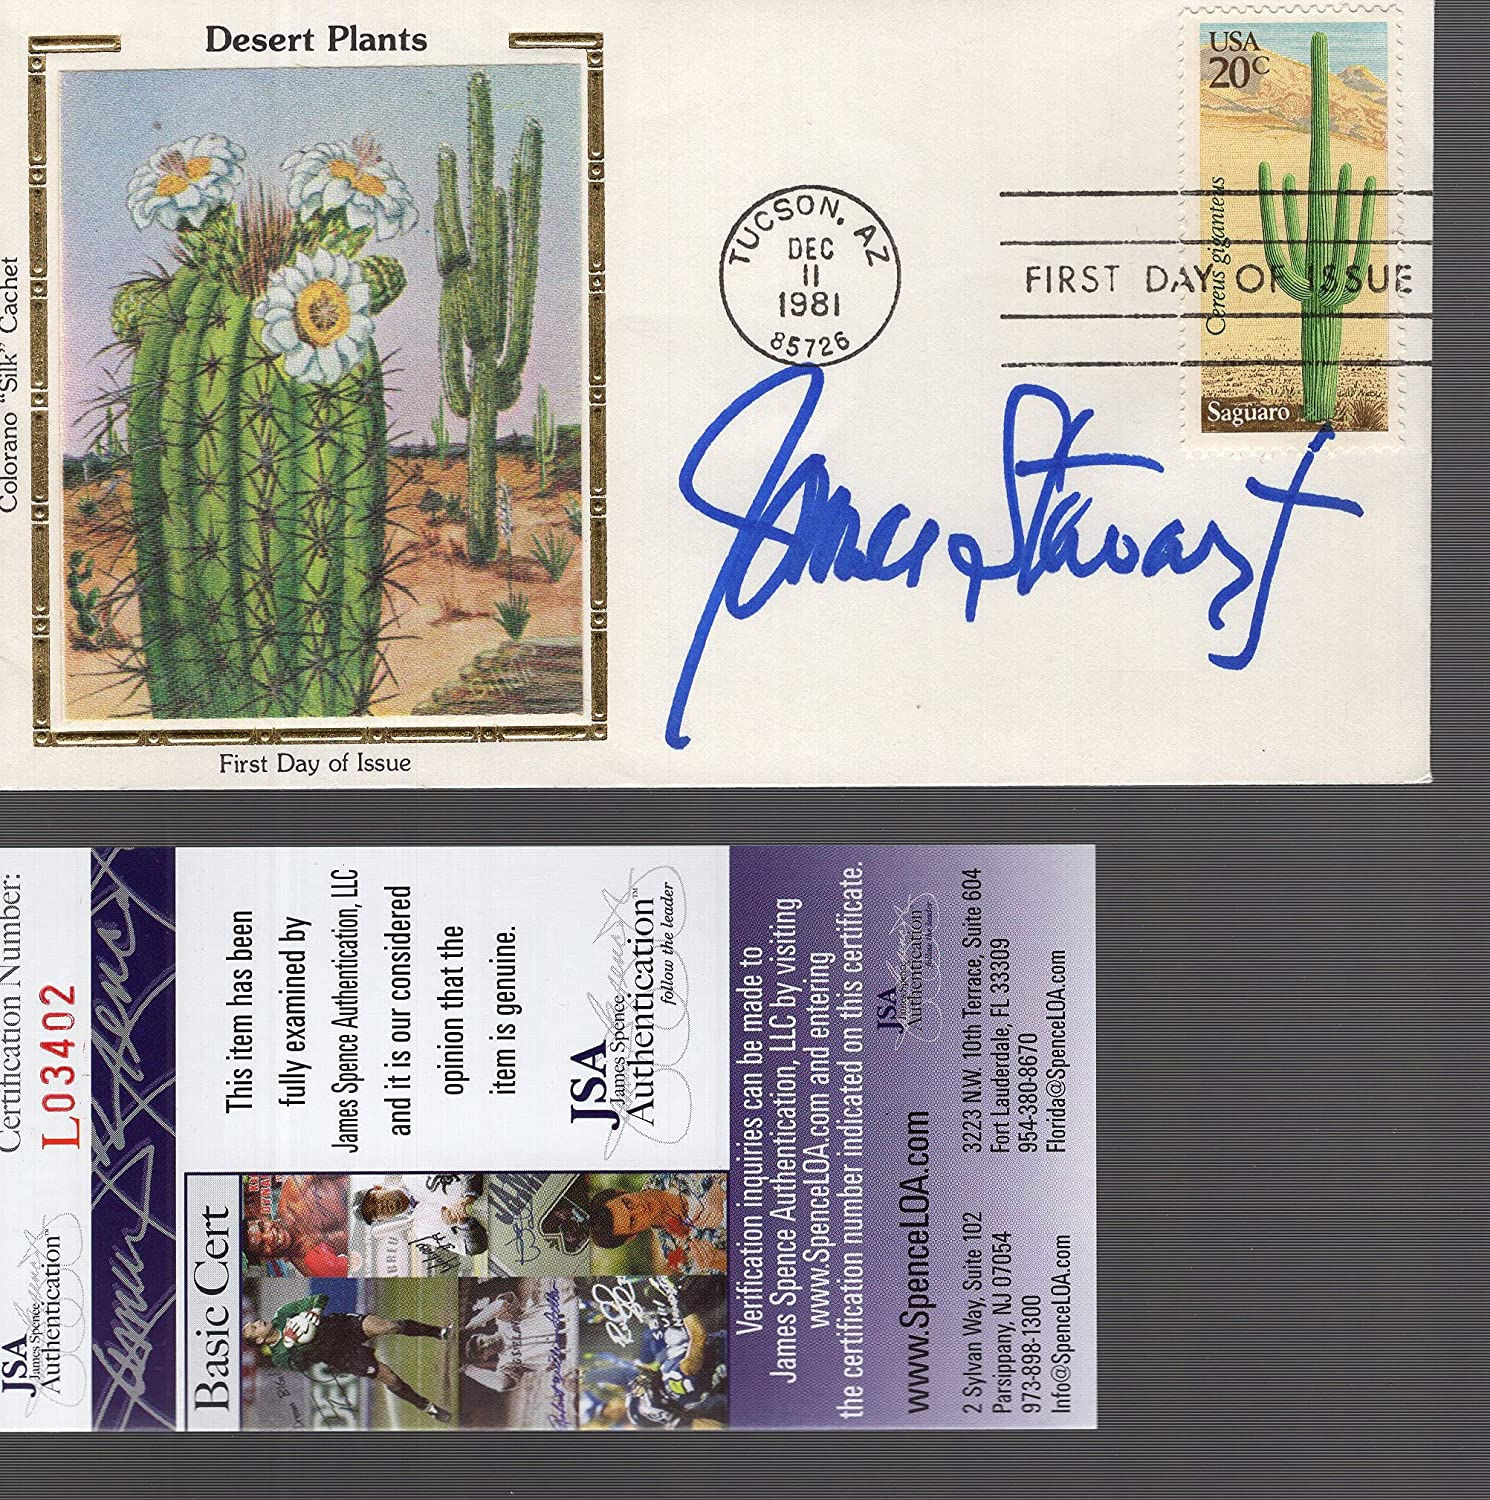 JAMES STEWART AUTOGRAPHED Topics on TV 1981 DESERT DAY FIRST PLANTS National products COVER+JSA